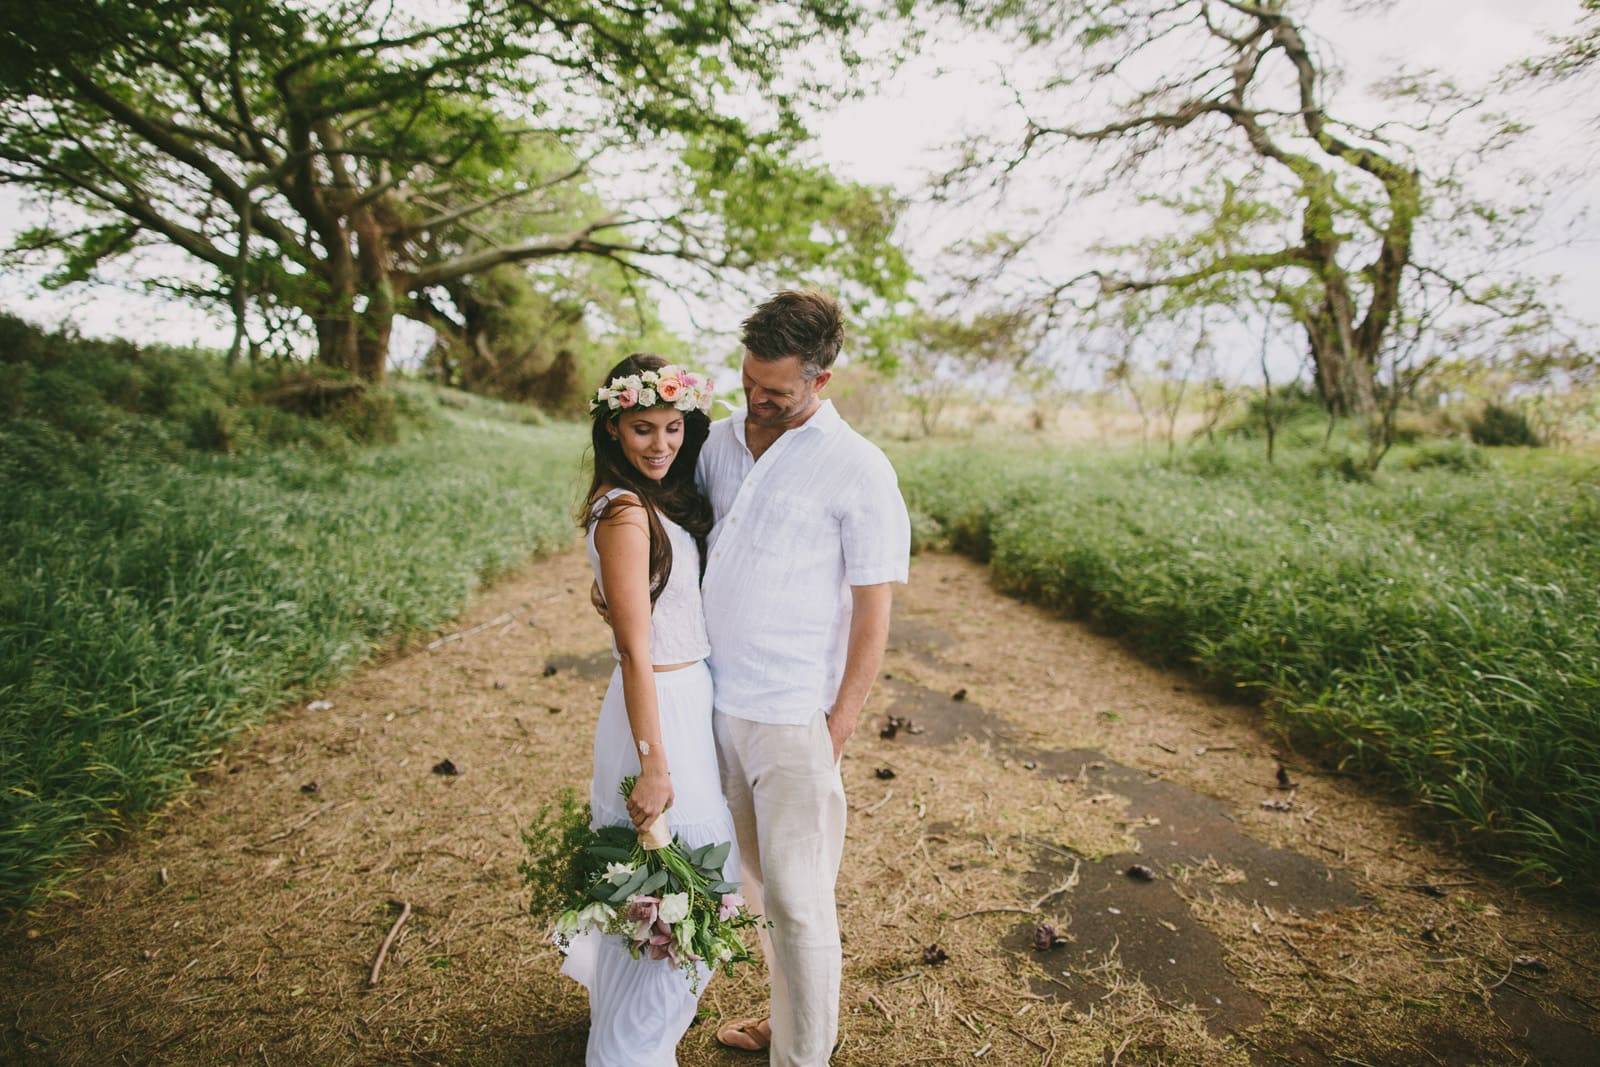 Maui_Wedding_Wailea_Kapalua_Hawaii_Photographer_031